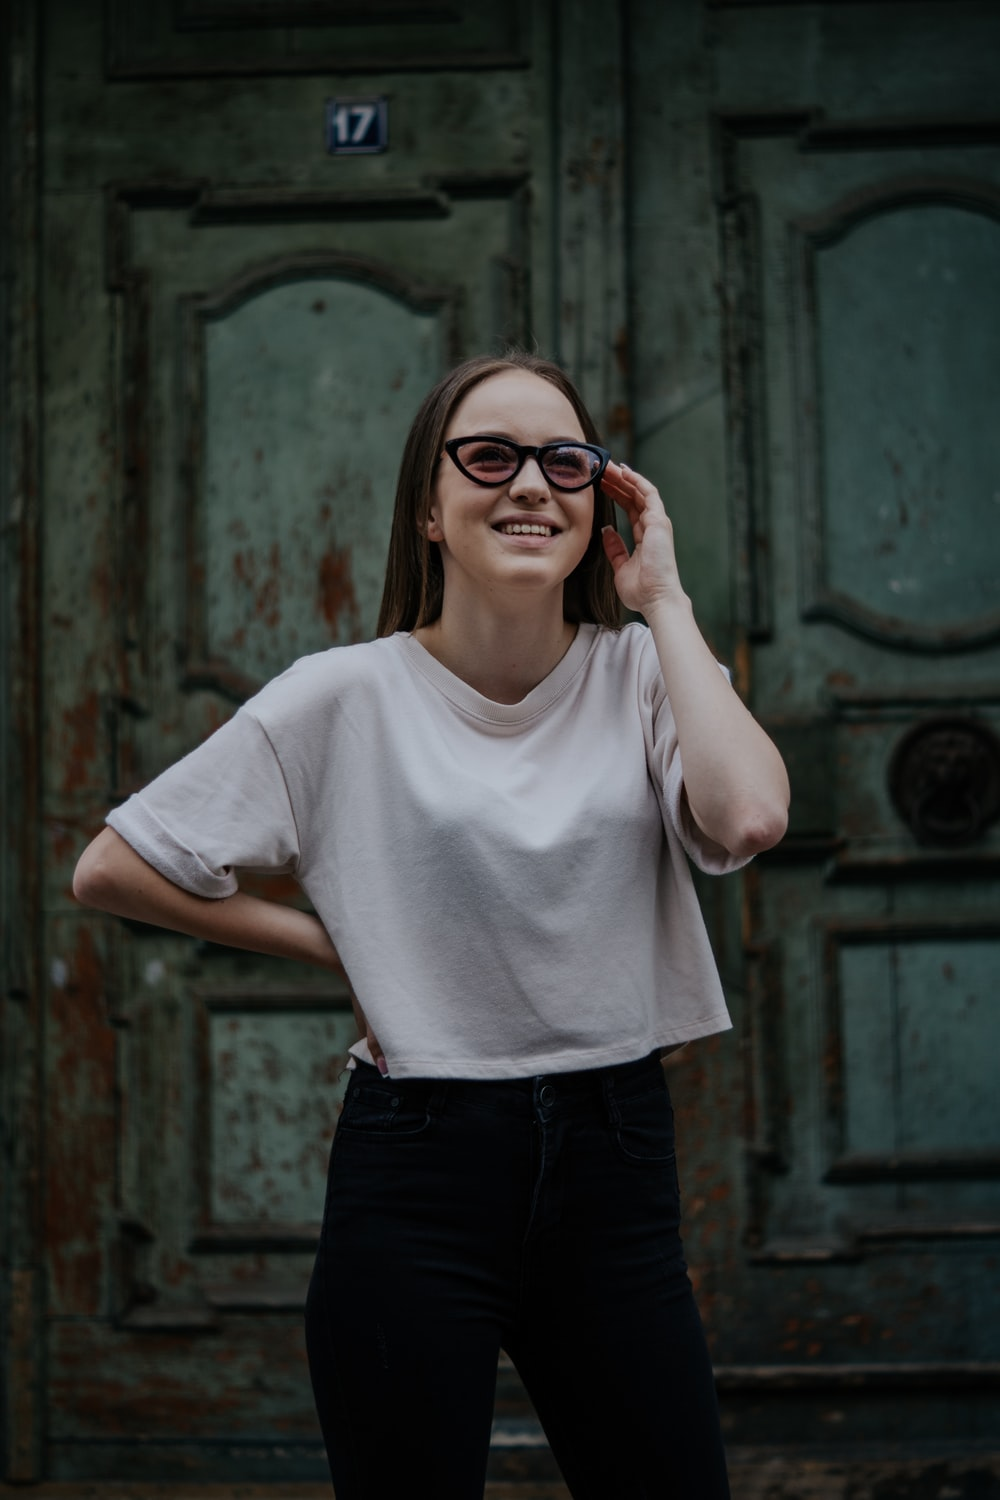 woman in white crew neck t-shirt and black pants wearing red framed eyeglasses